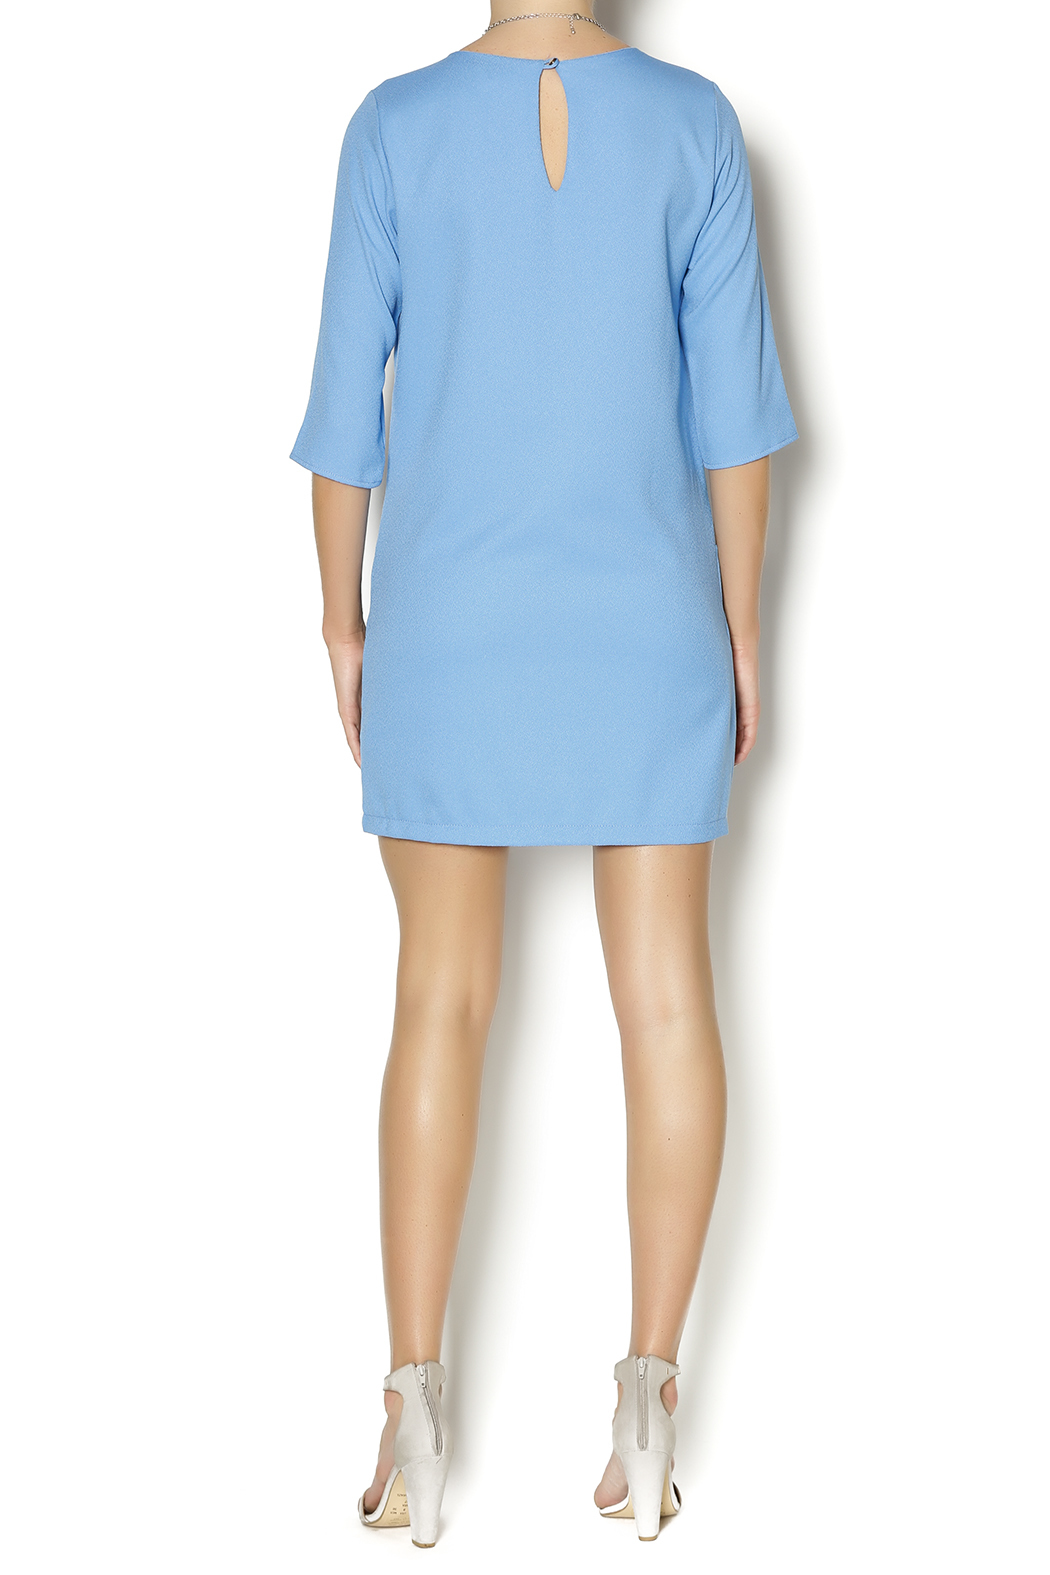 Everly Blue Shirt Dress - Side Cropped Image